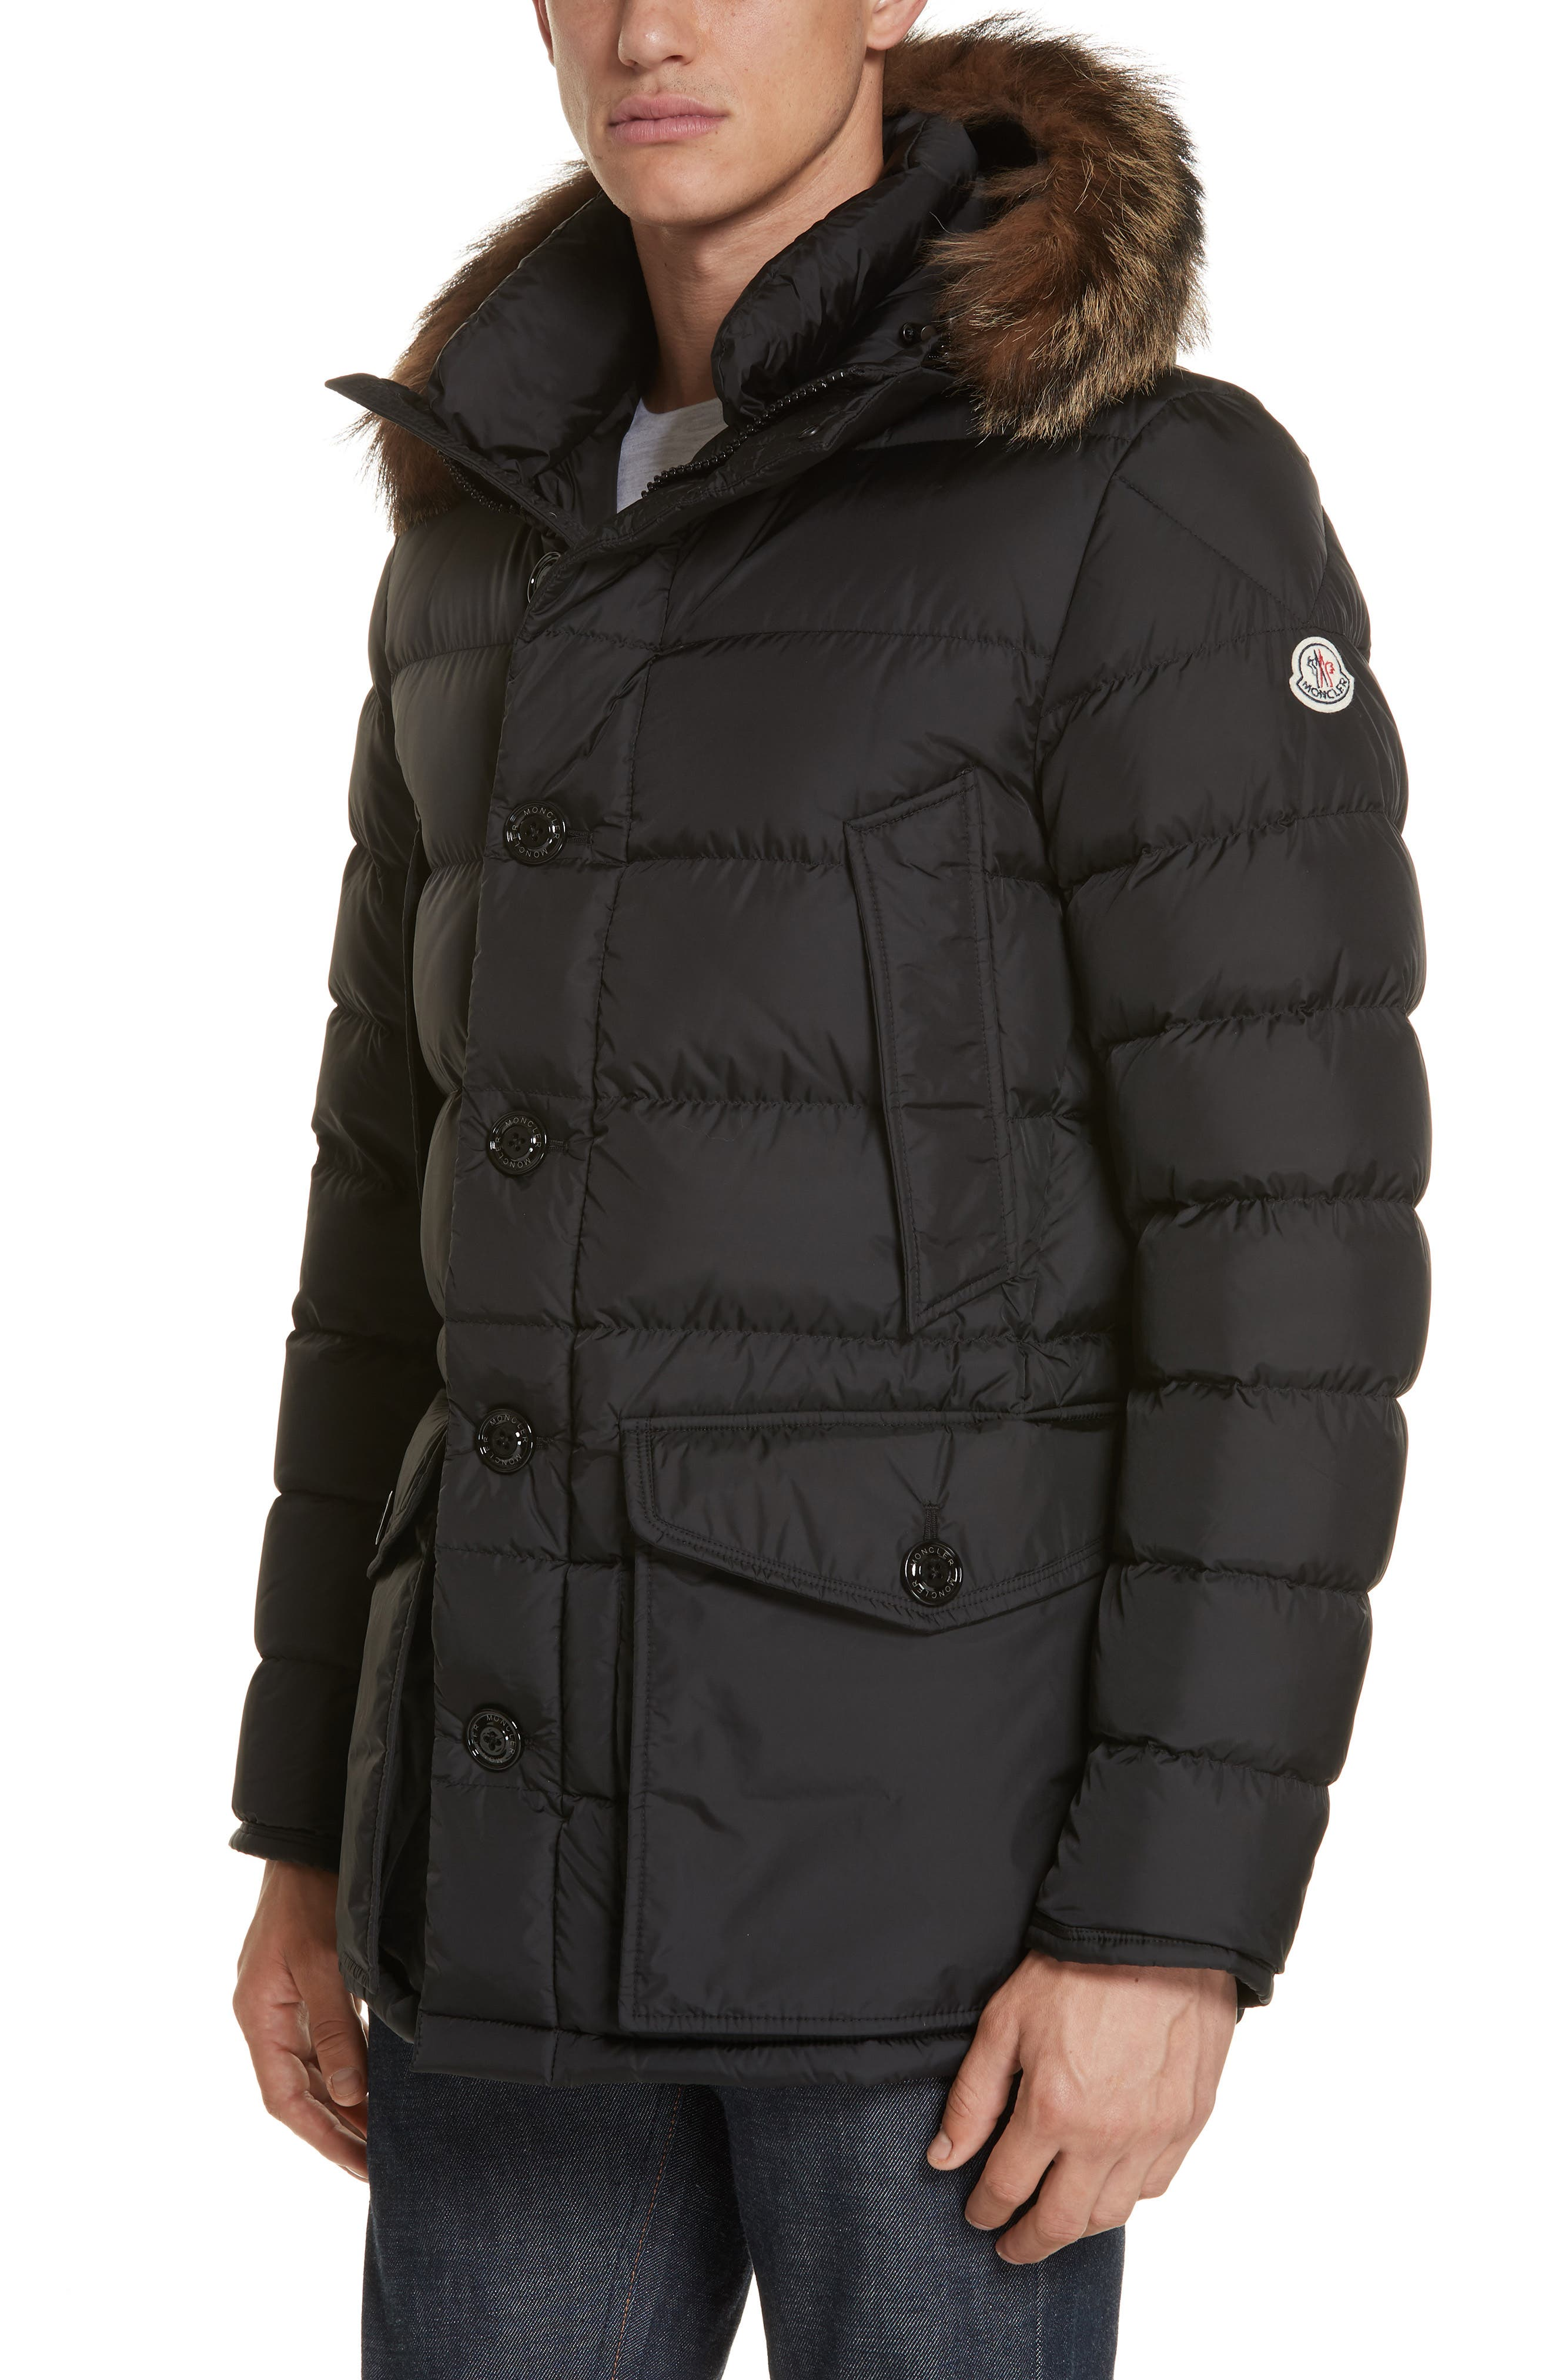 Cluny Giubbotto Down Parka with Genuine Coyote Fur Trim,                             Main thumbnail 1, color,                             001